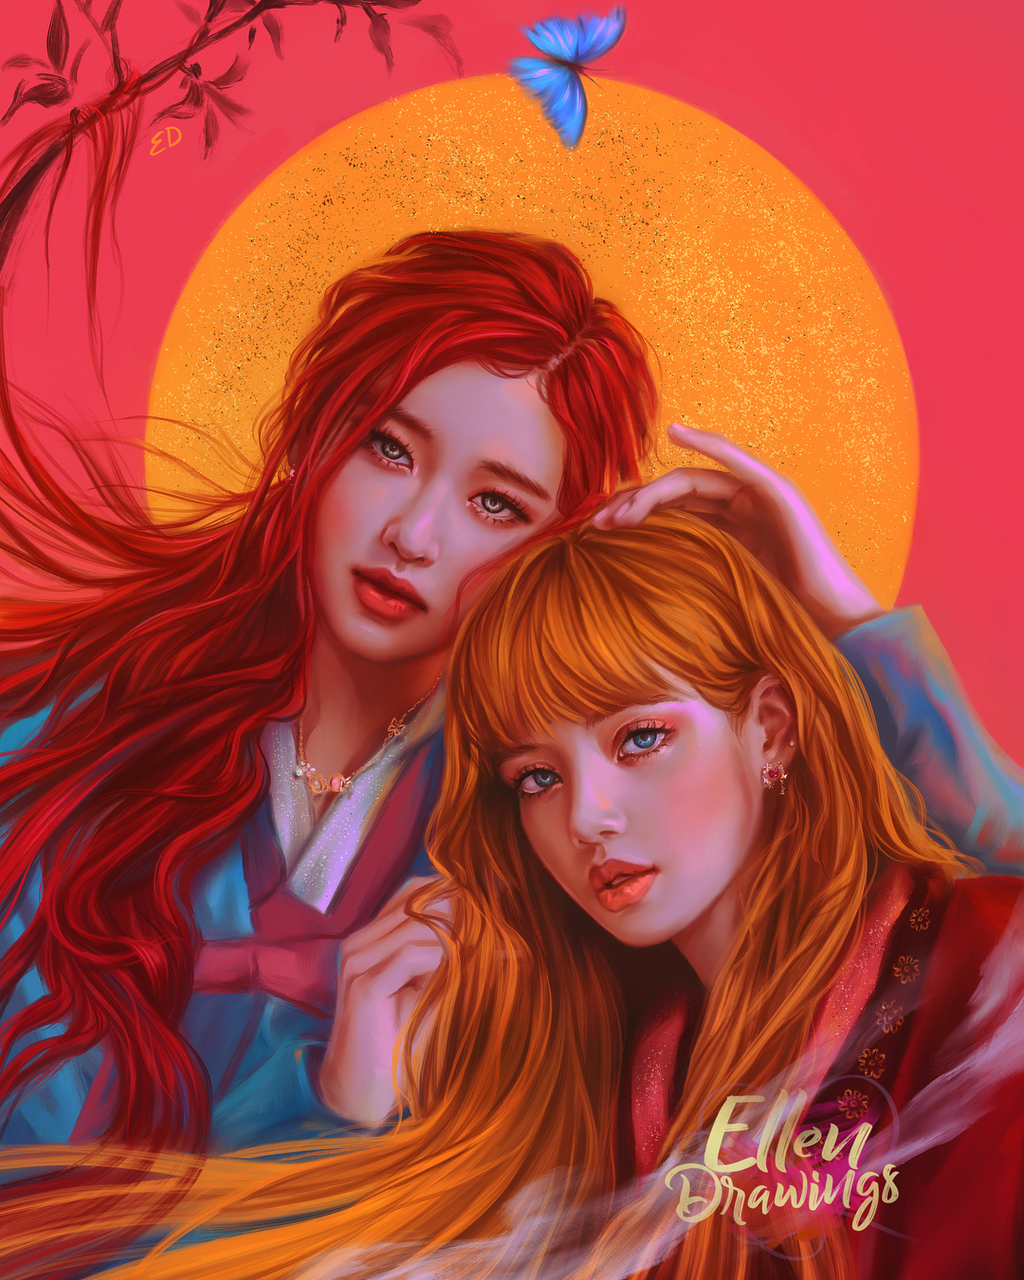 blackpink, painting and fanart